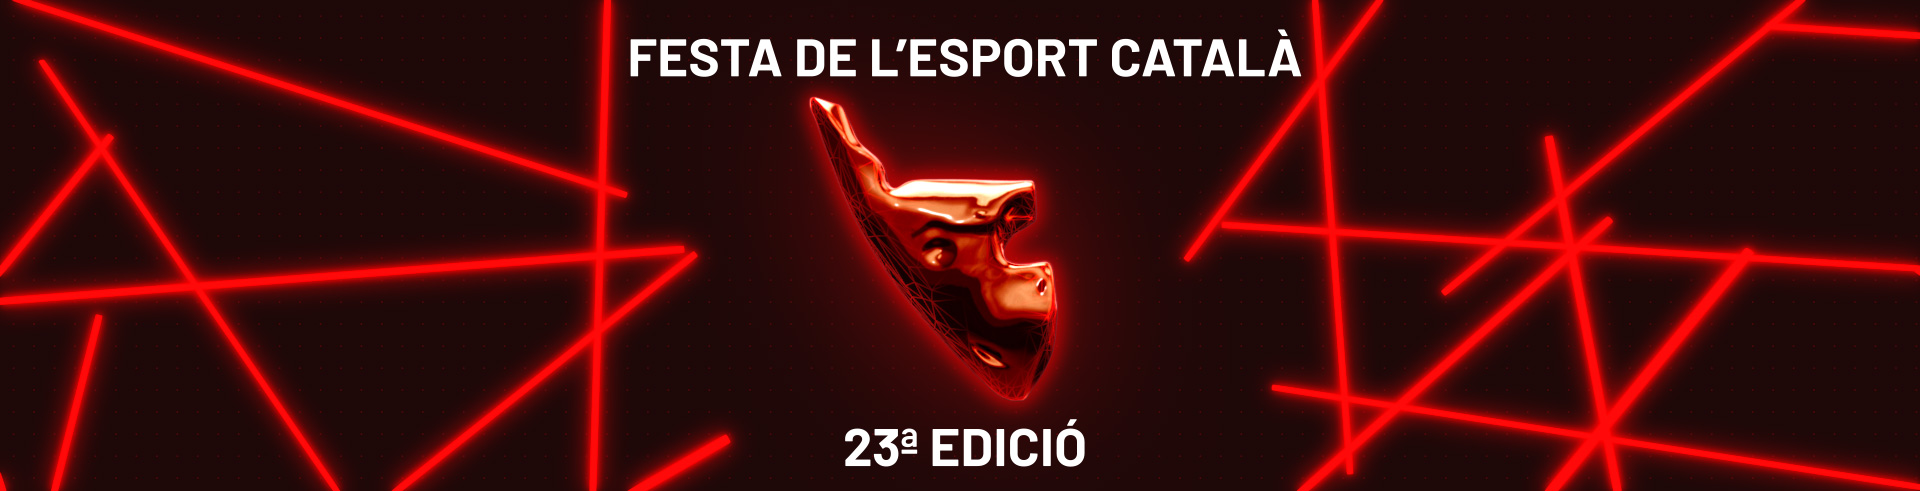 festa-esport-catala-2020-rebrand-motion-graphics-screenshot-03